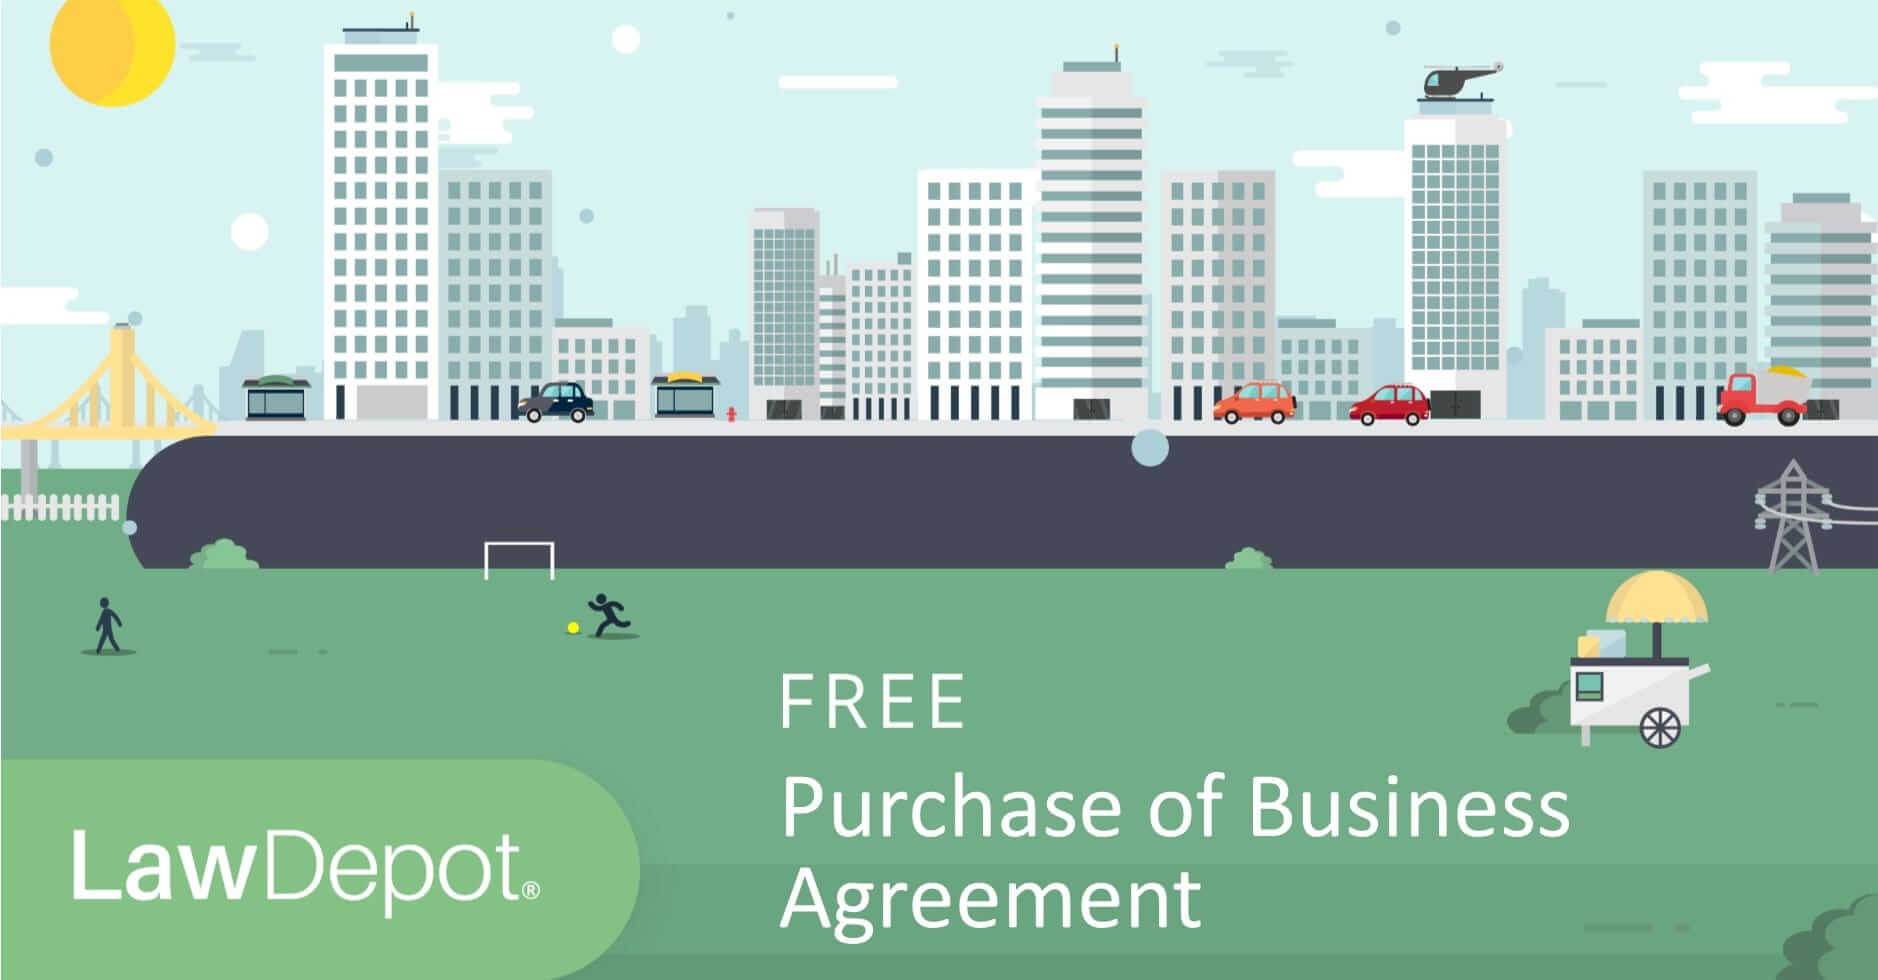 Business Purchase Agreement – Free Business Purchase Agreement